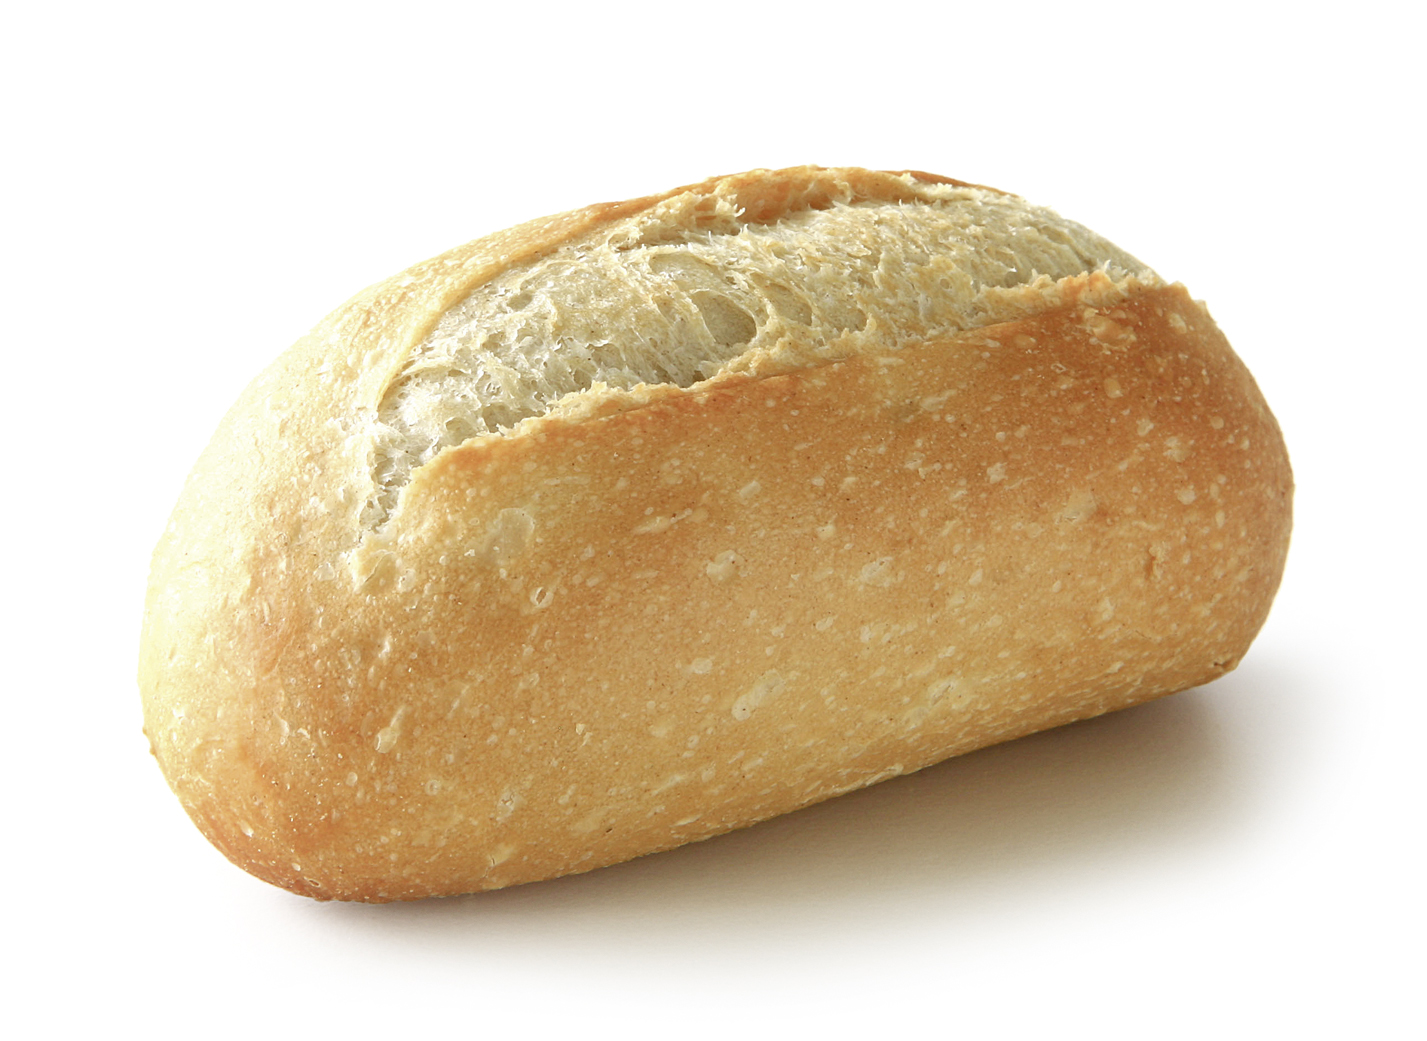 Mini Wheat Roll - Wheat roll baked according to the French tradition length: 9.5 cm